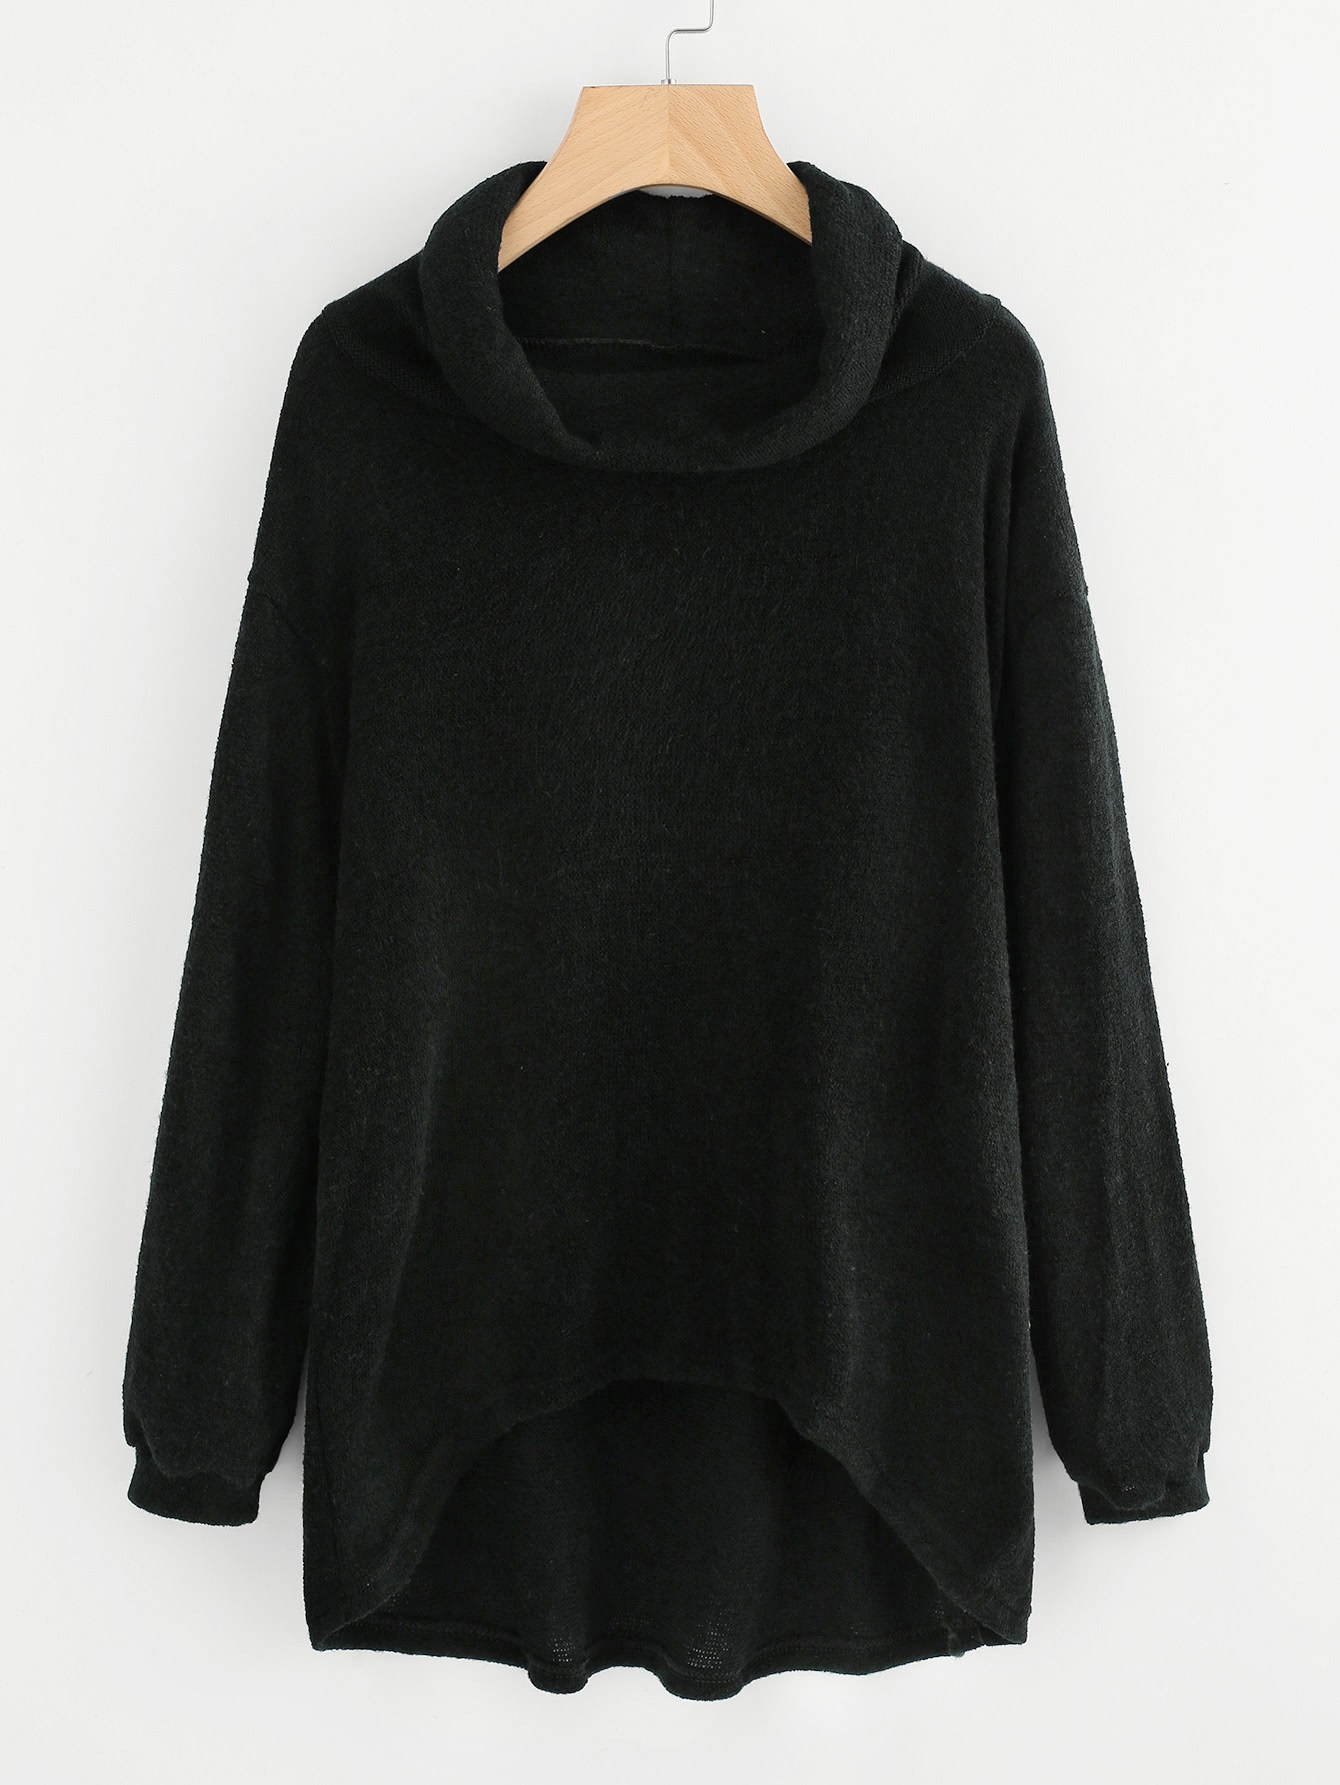 High Neck Dip Hem Knit Sweater cable knit high neck sweater cardigan